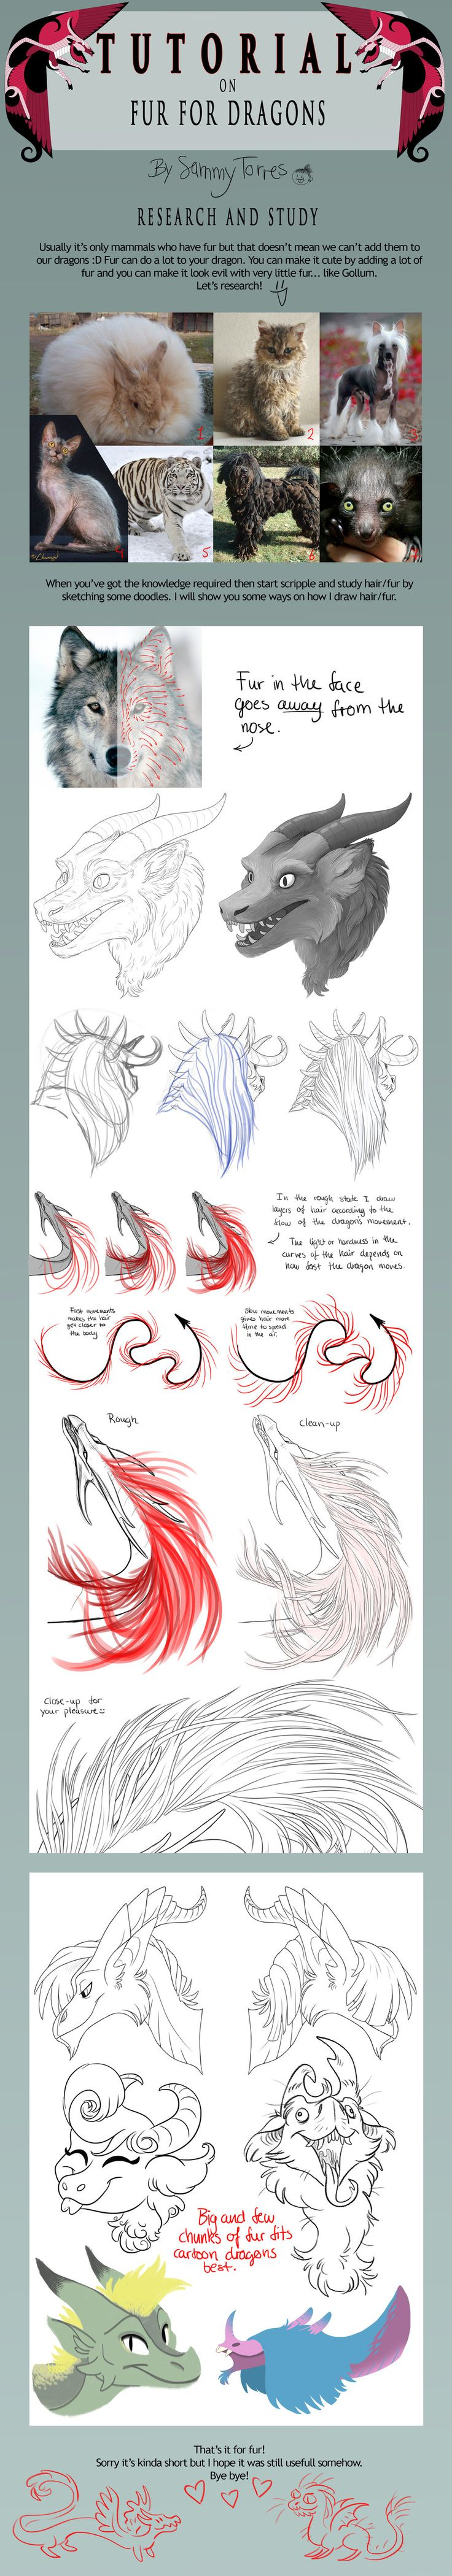 TUTORIAL: Fur for Dragons by SammyTorres.deviantart.com on @DeviantArt